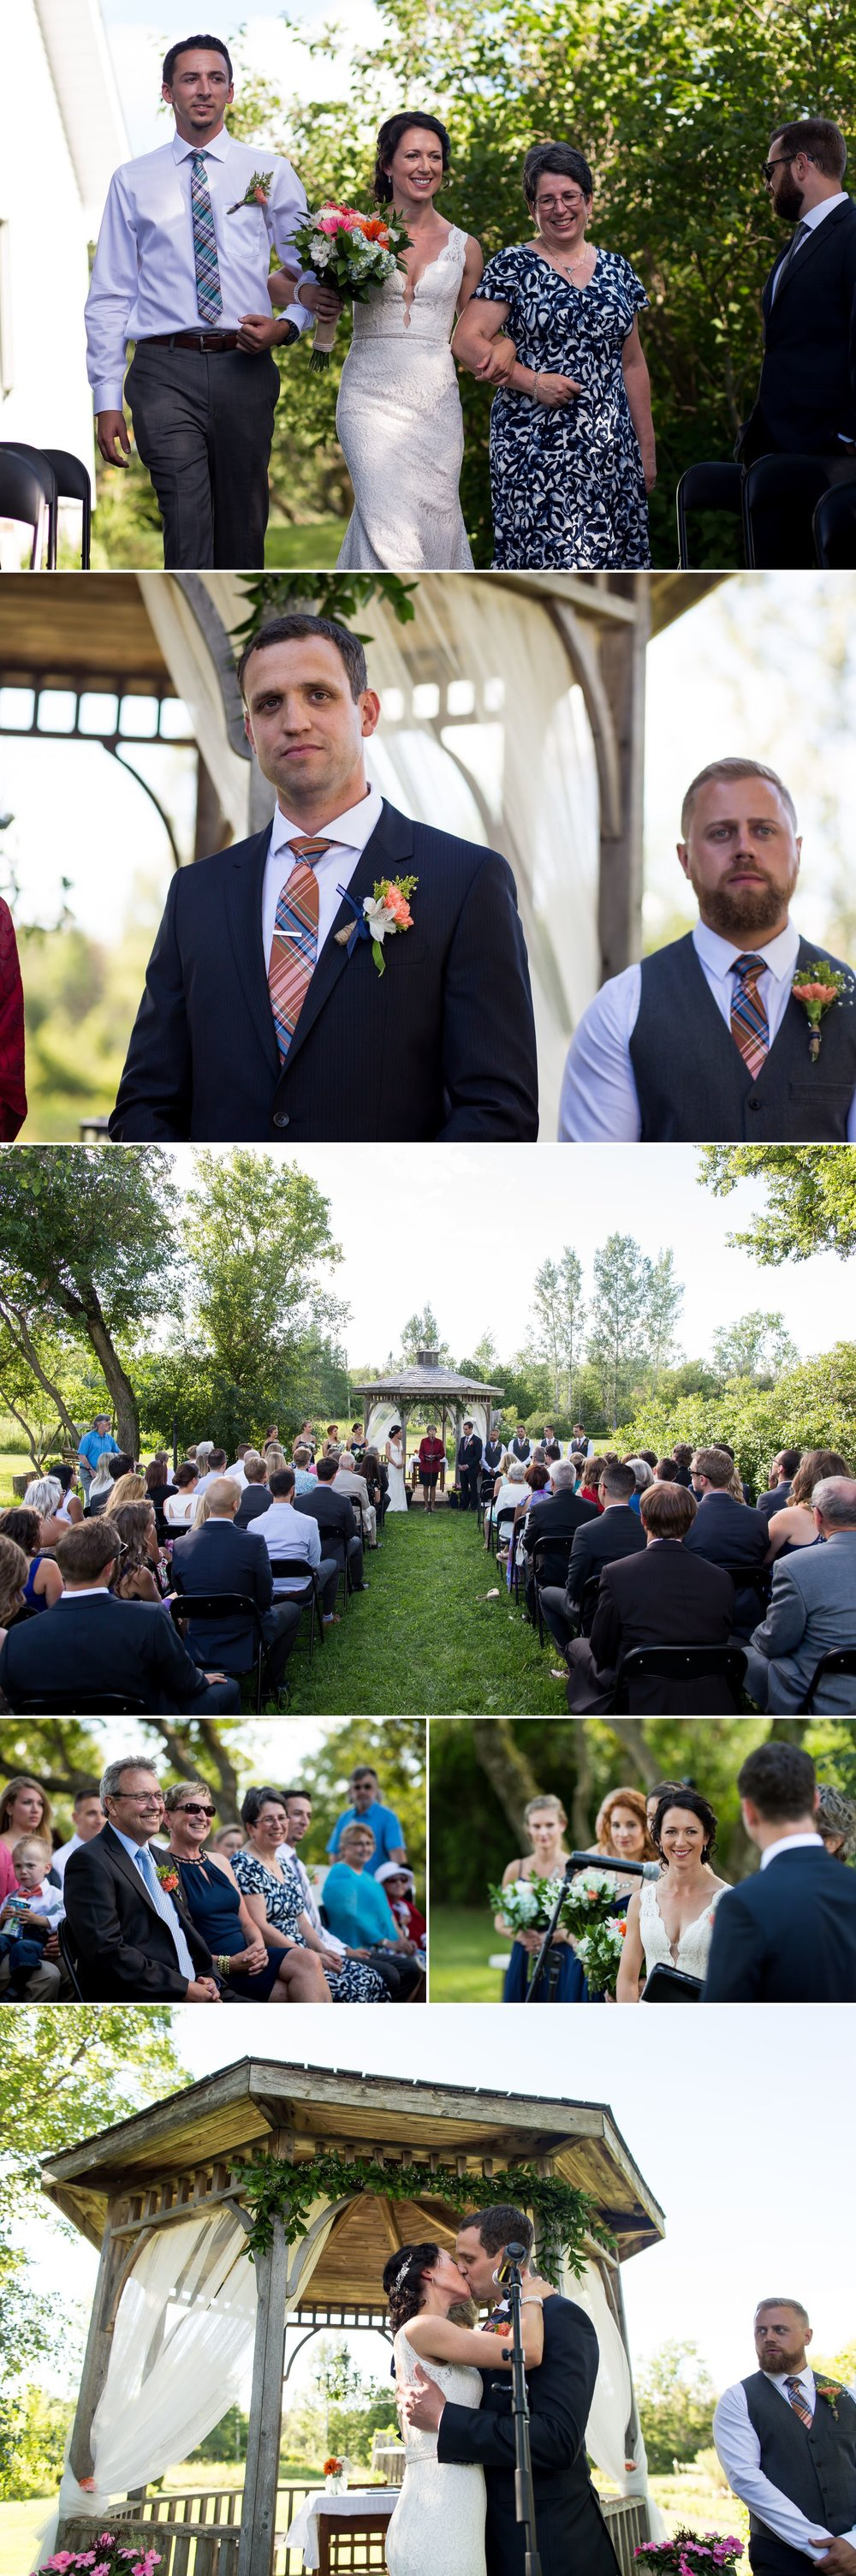 A wedding ceremony at The Herb Garden in Almonte Quebec